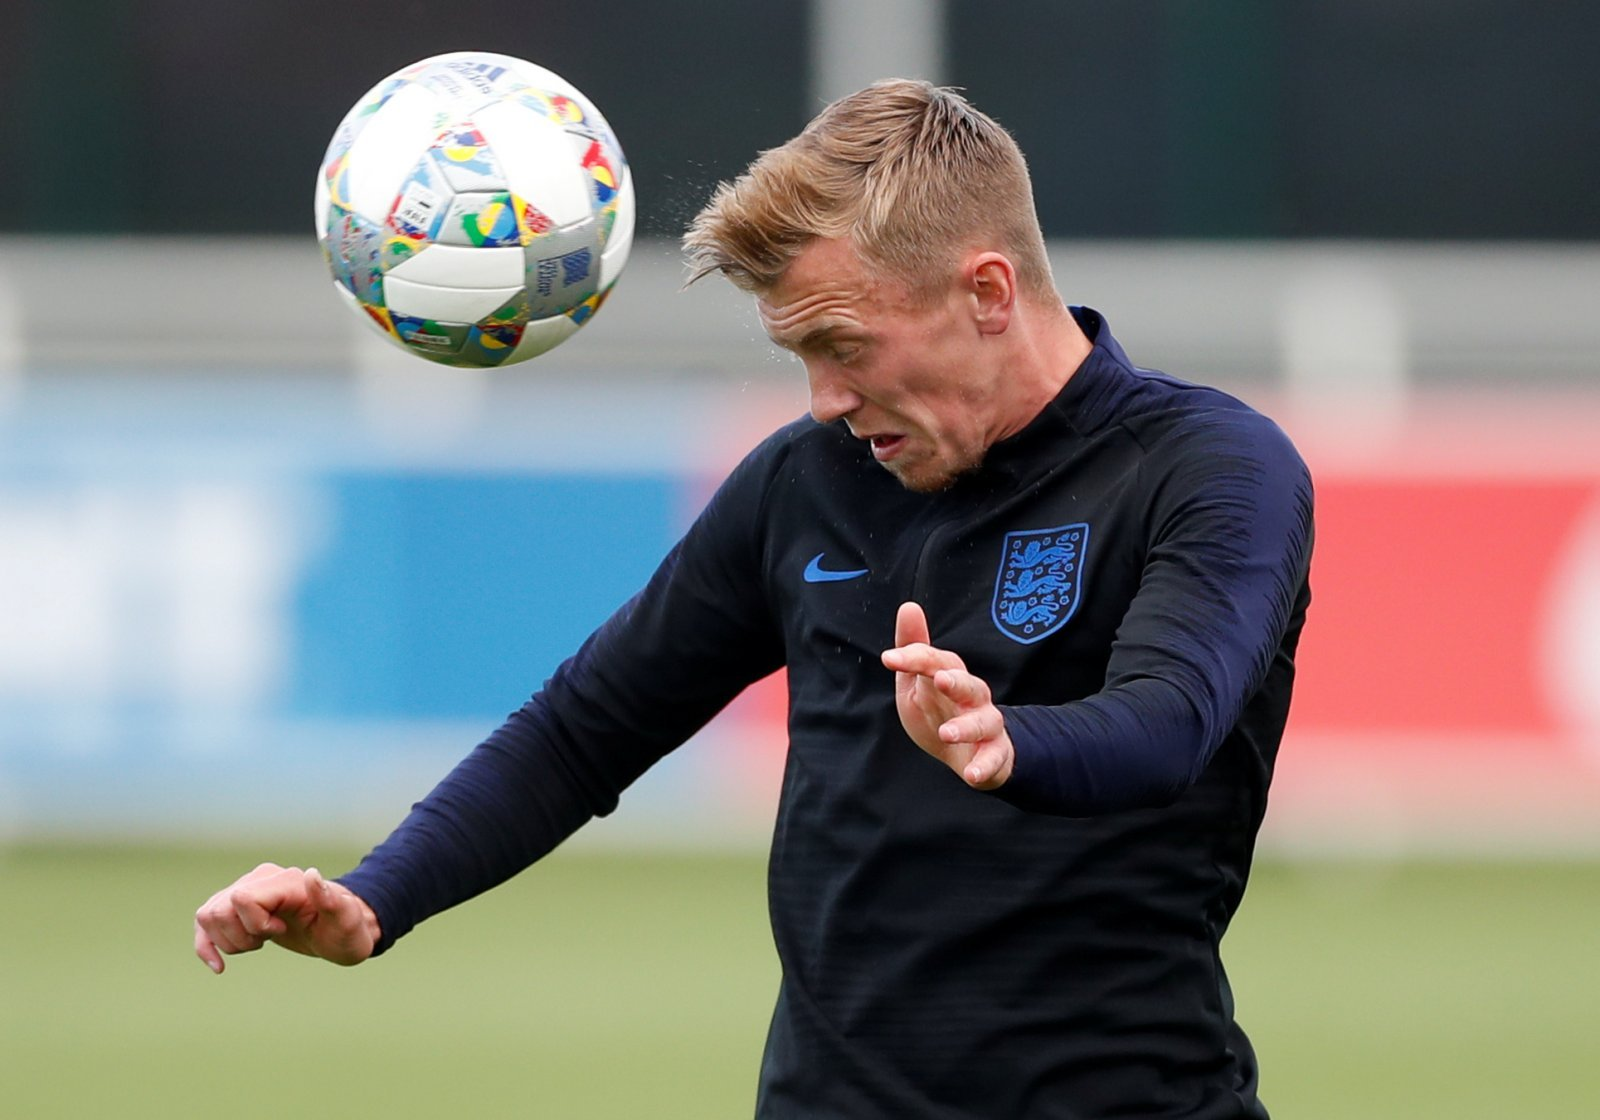 It's a big season for: James Ward-Prowse